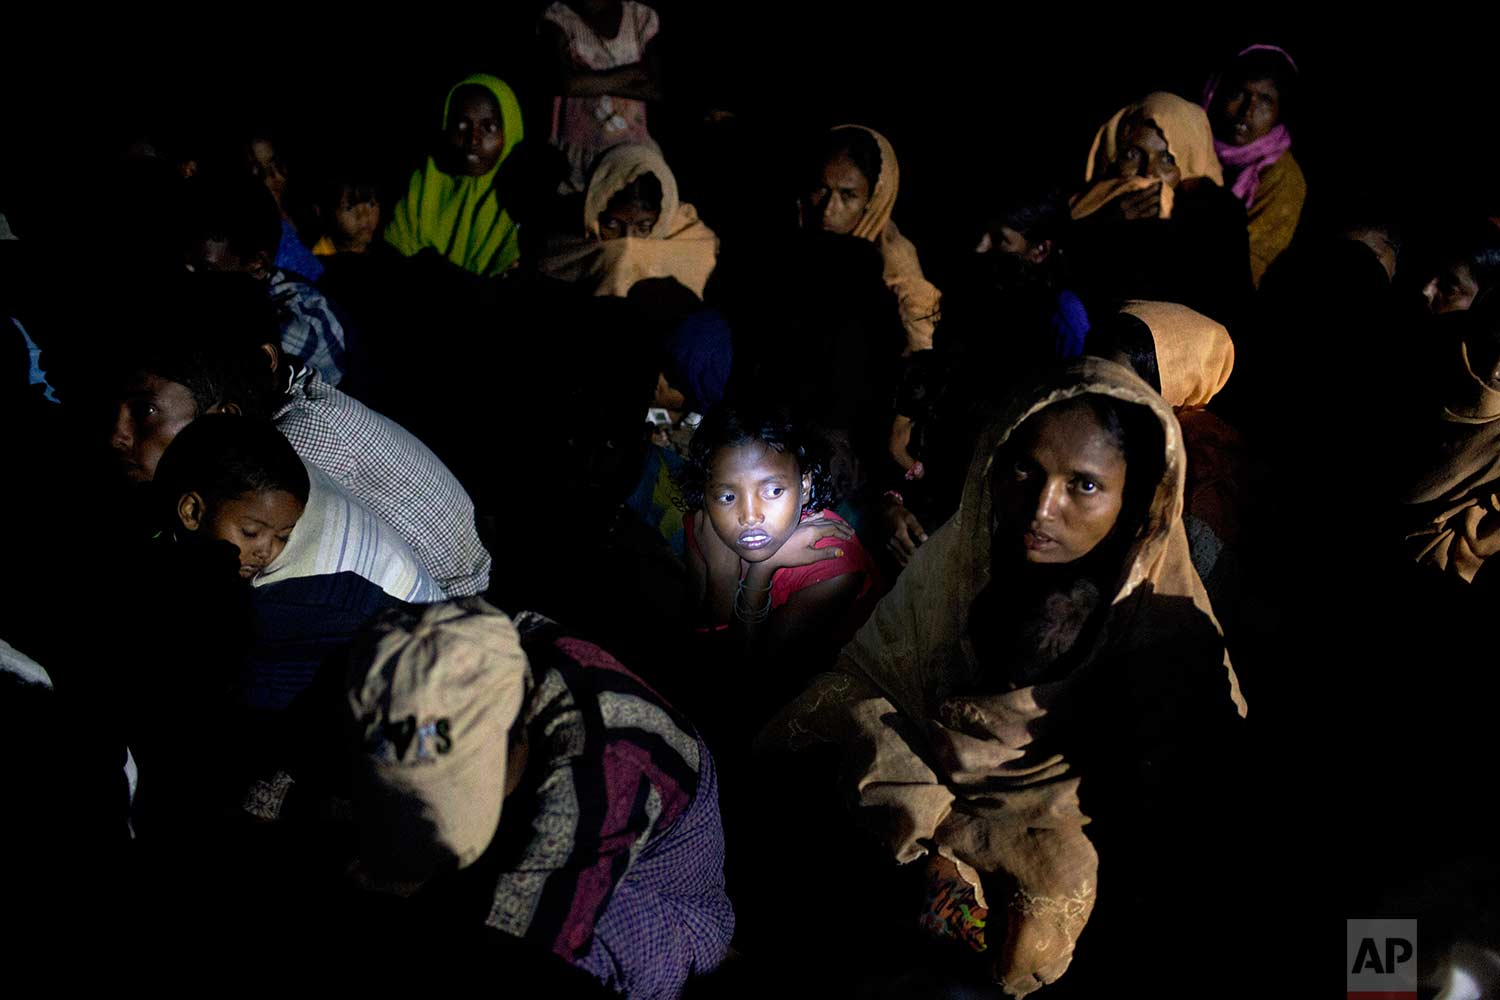 While waiting for permission to proceed forward, the beam of a flashlight illuminates the face of a Rohingya Muslim girl sitting with a group in a raft made of plastic containers on which they crossed over from Myanmar into Bangladesh, near Shah Porir Dwip, Bangladesh, Friday, Nov. 10, 2017. U.N. (AP Photo/A.M. Ahad)